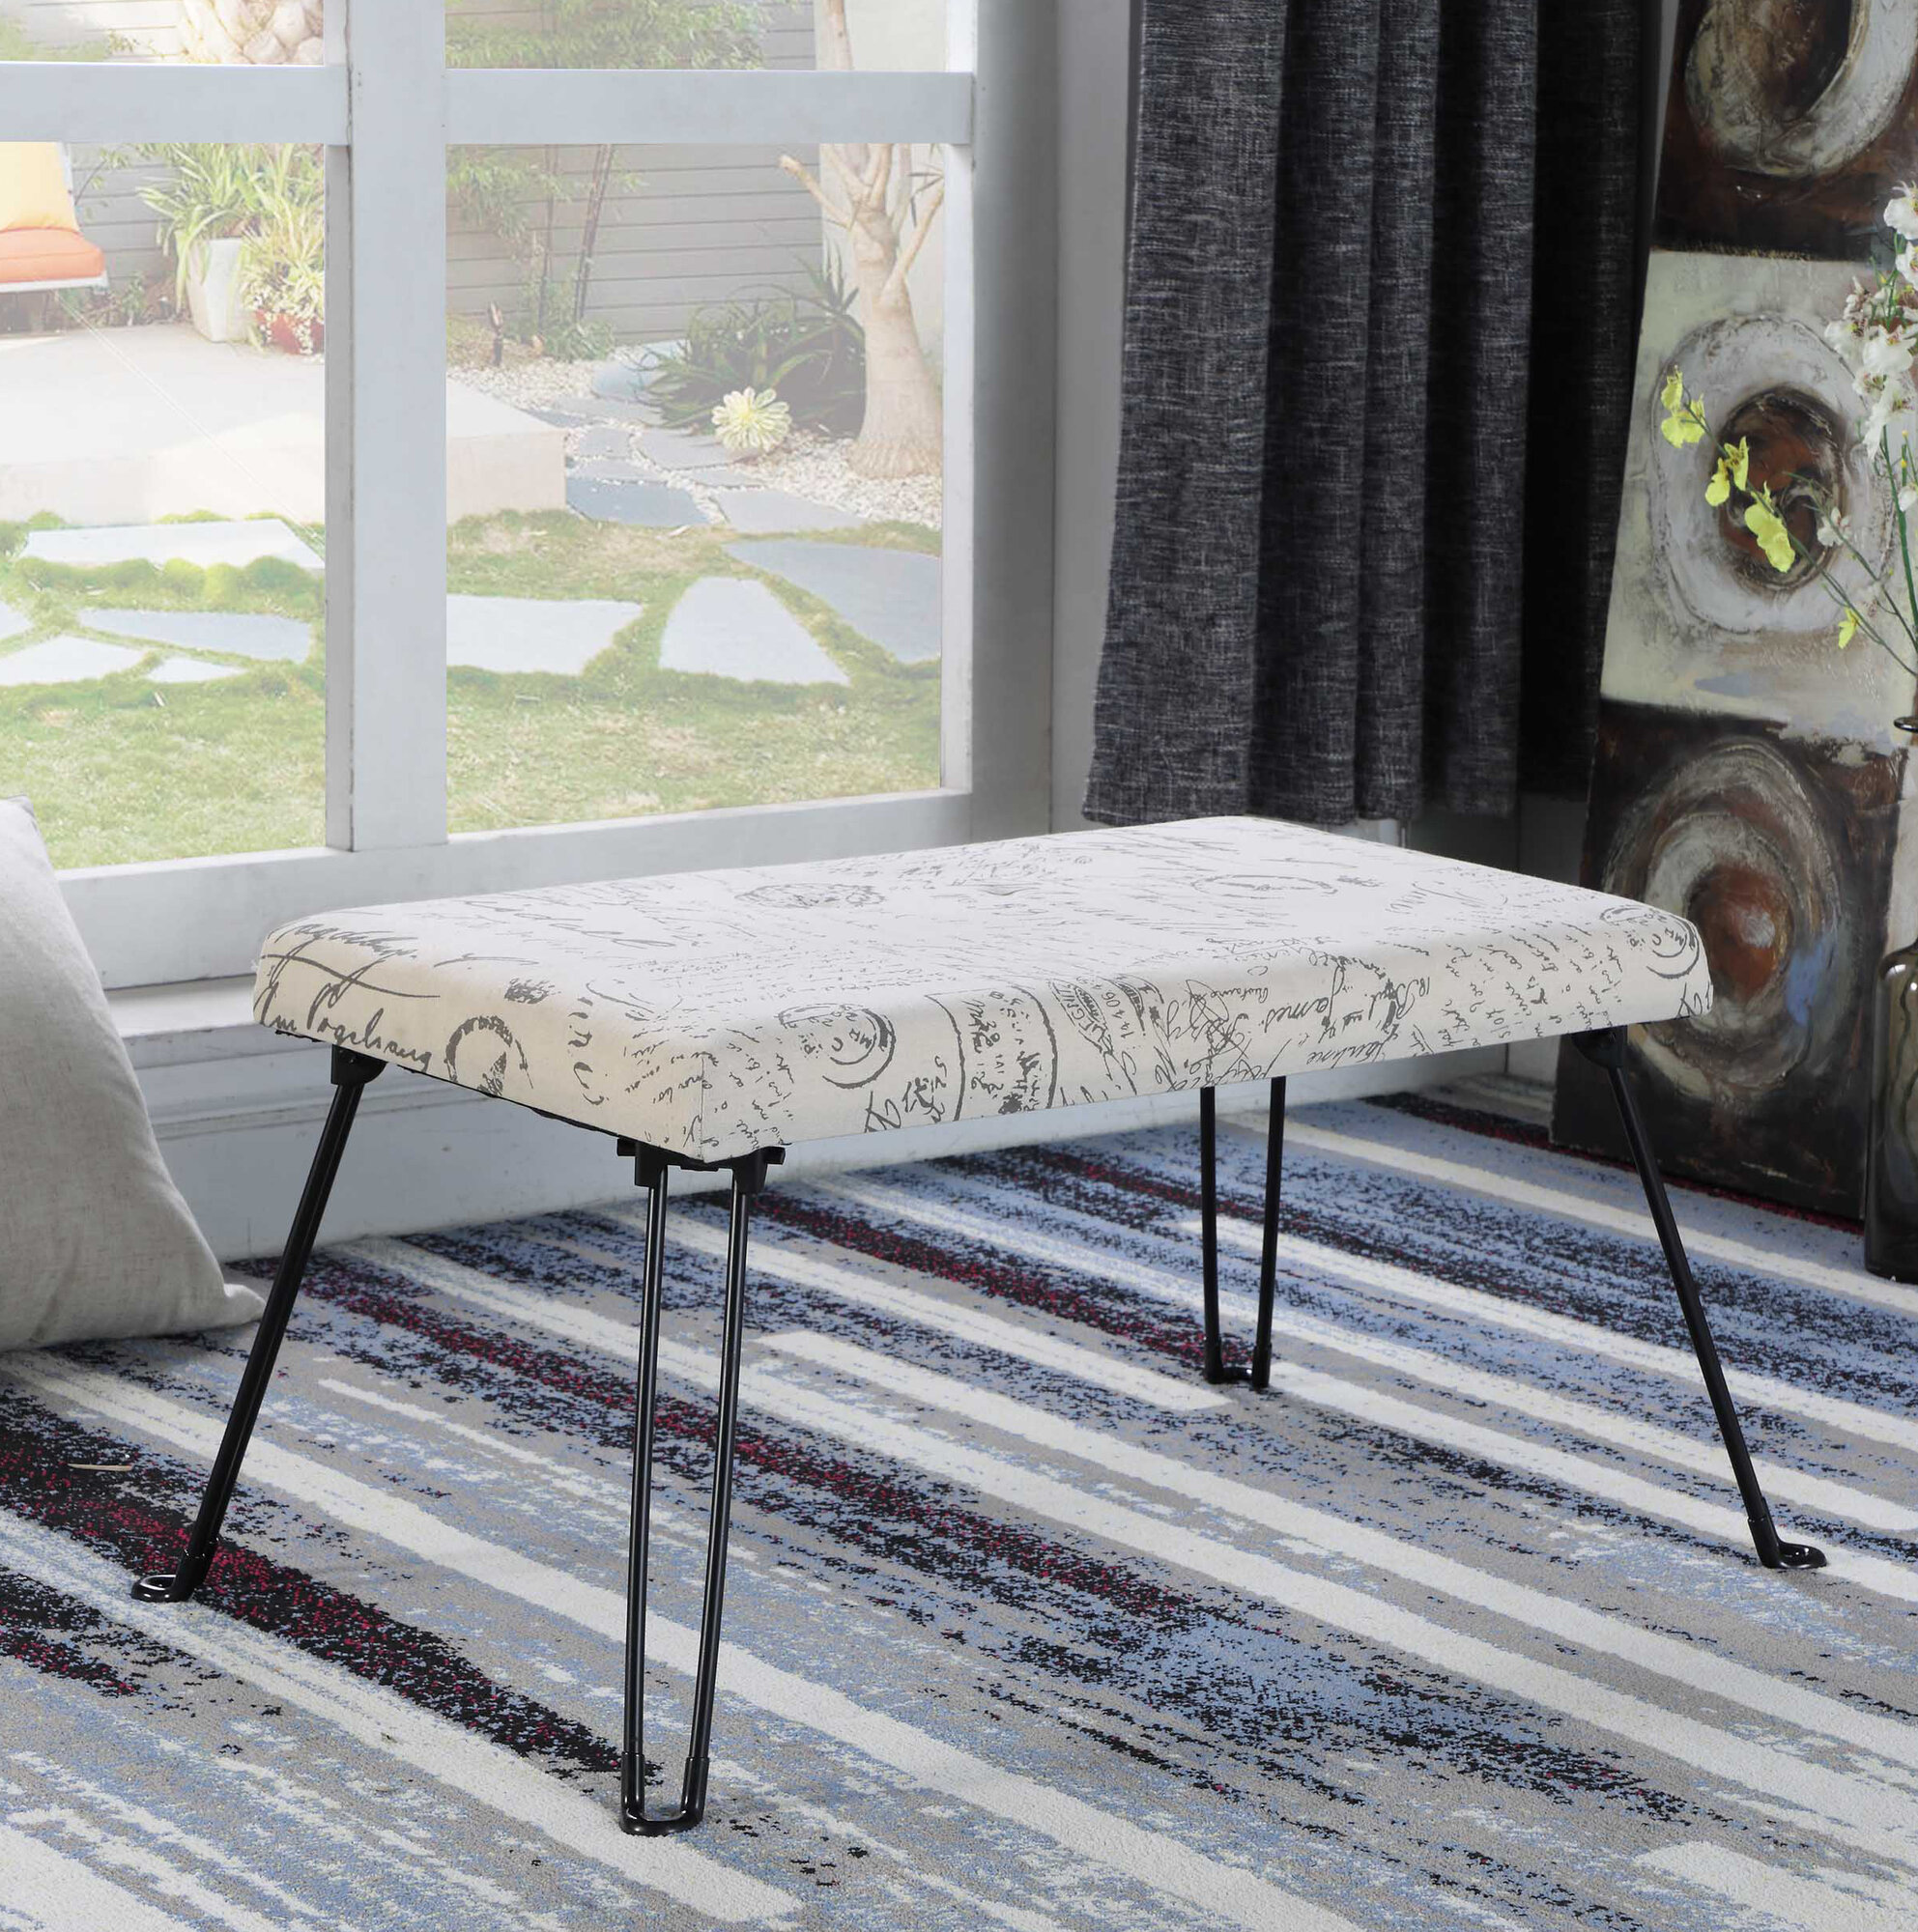 Admirable Details About Ophelia Co Arthemus Backless Vanity Stool Ncnpc Chair Design For Home Ncnpcorg